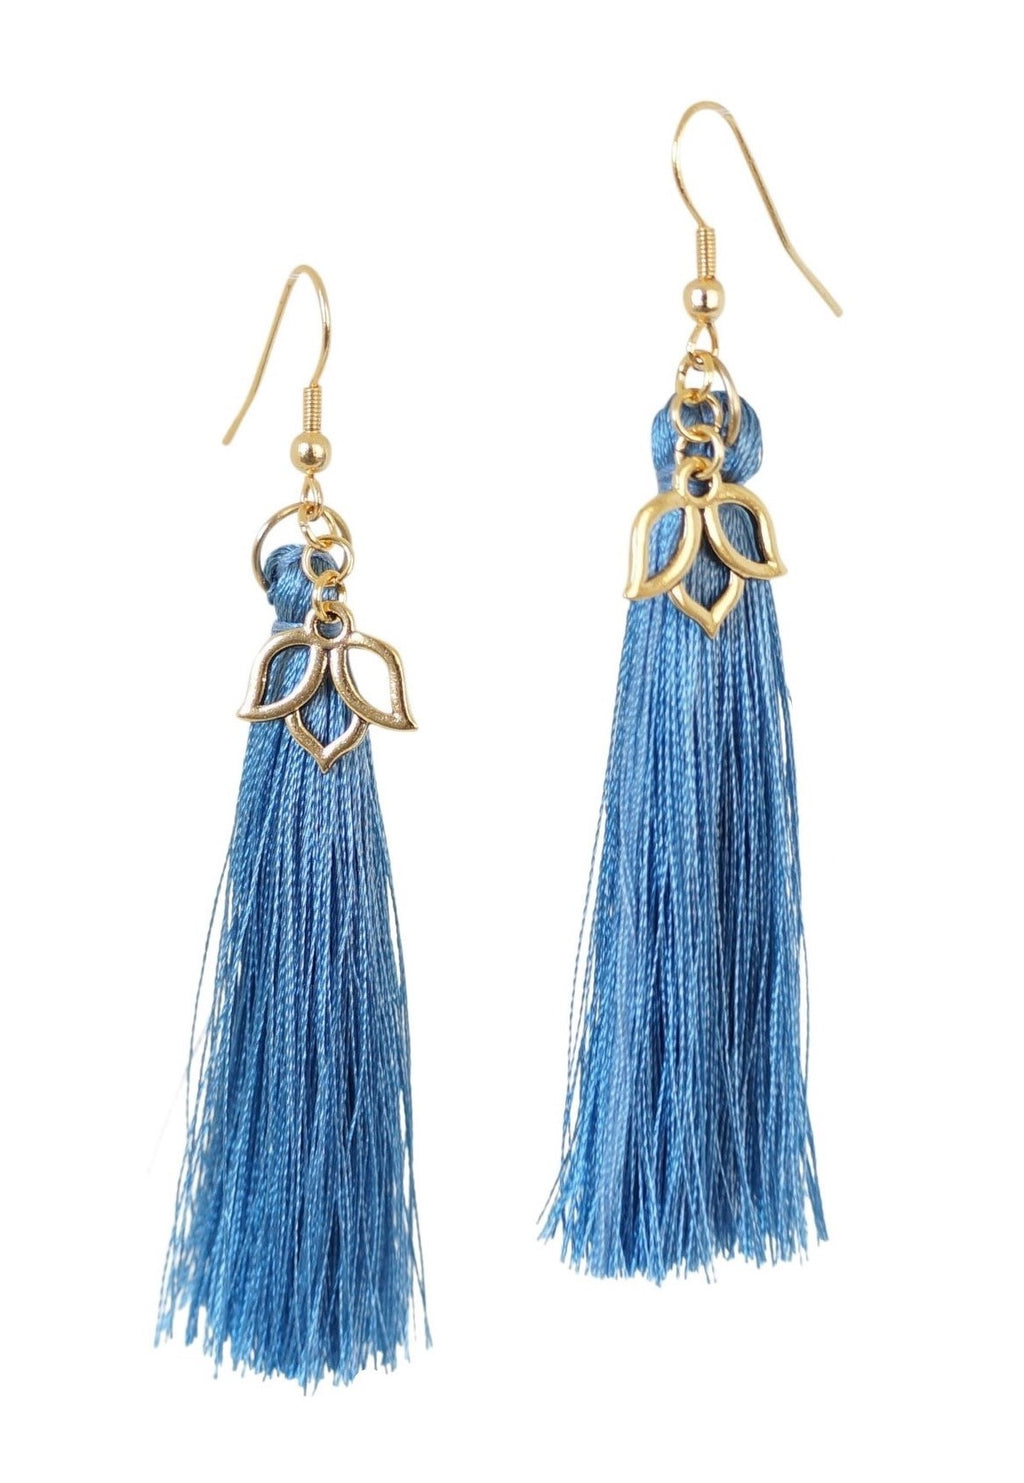 Freedom Earrings - Carolyn Hearn Designs